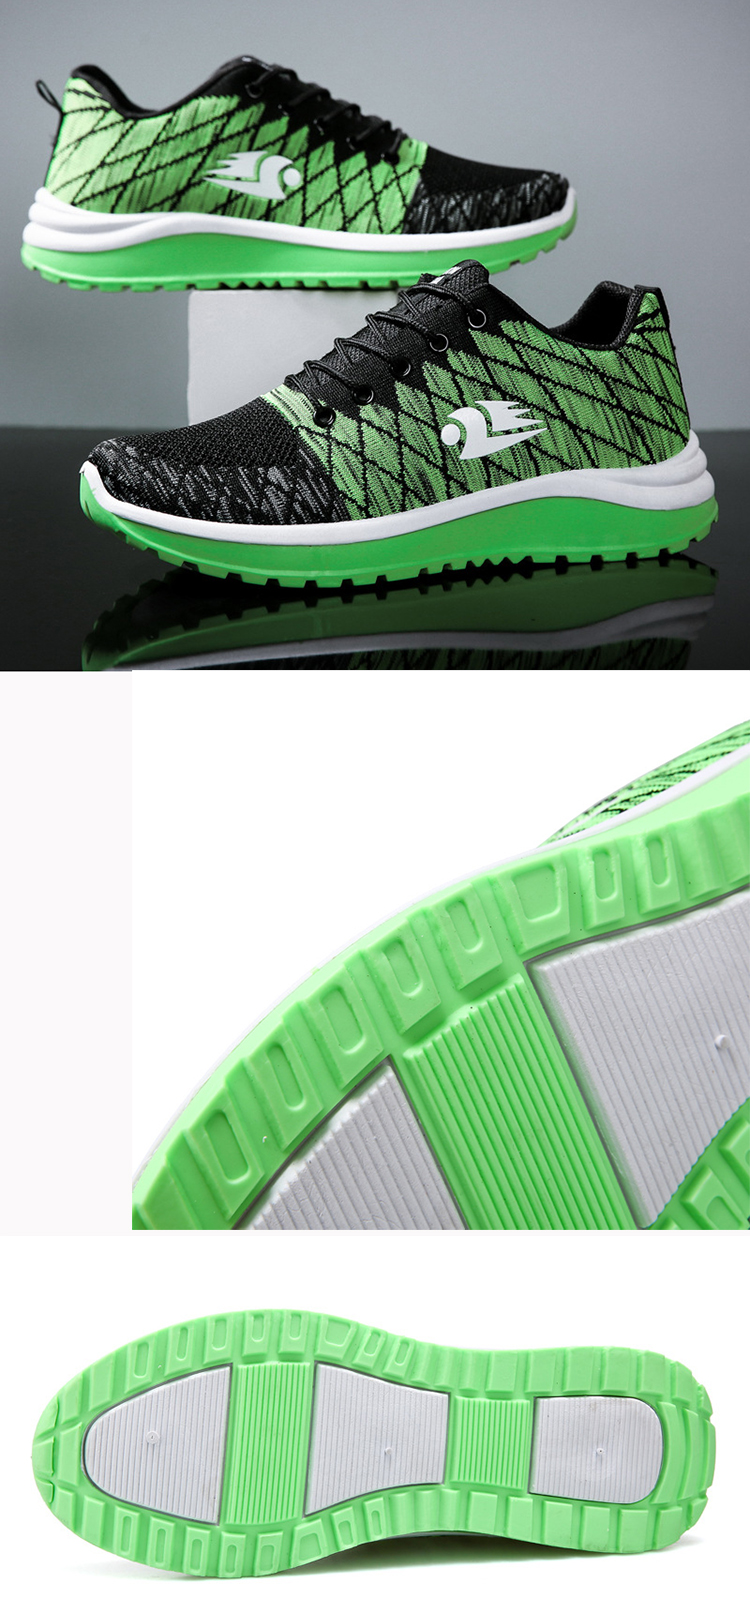 Running Trainers Sports Gym Walking Jogging Athletic Fitness Outdoor Men Sneakers Sports Shoes